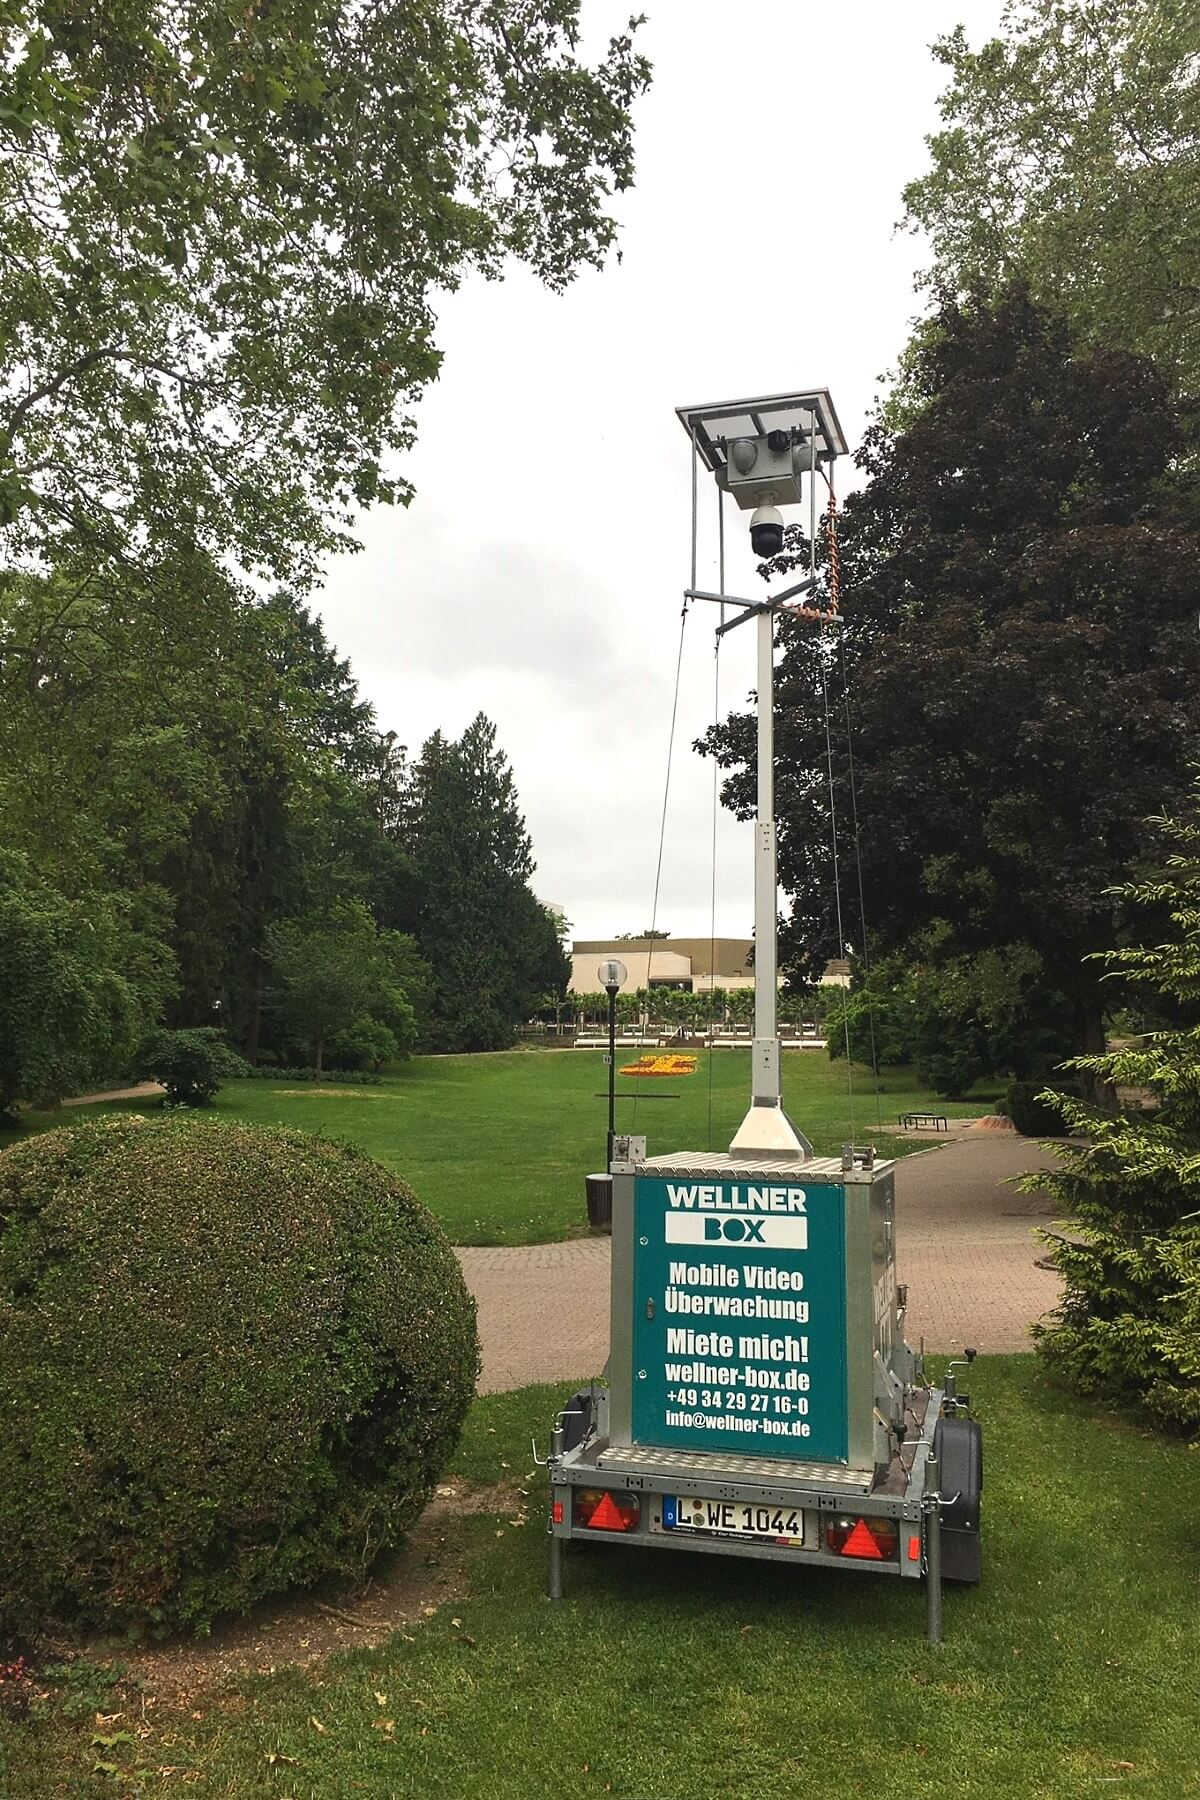 Event monitoring from 07 to 16 June in Bad Soden